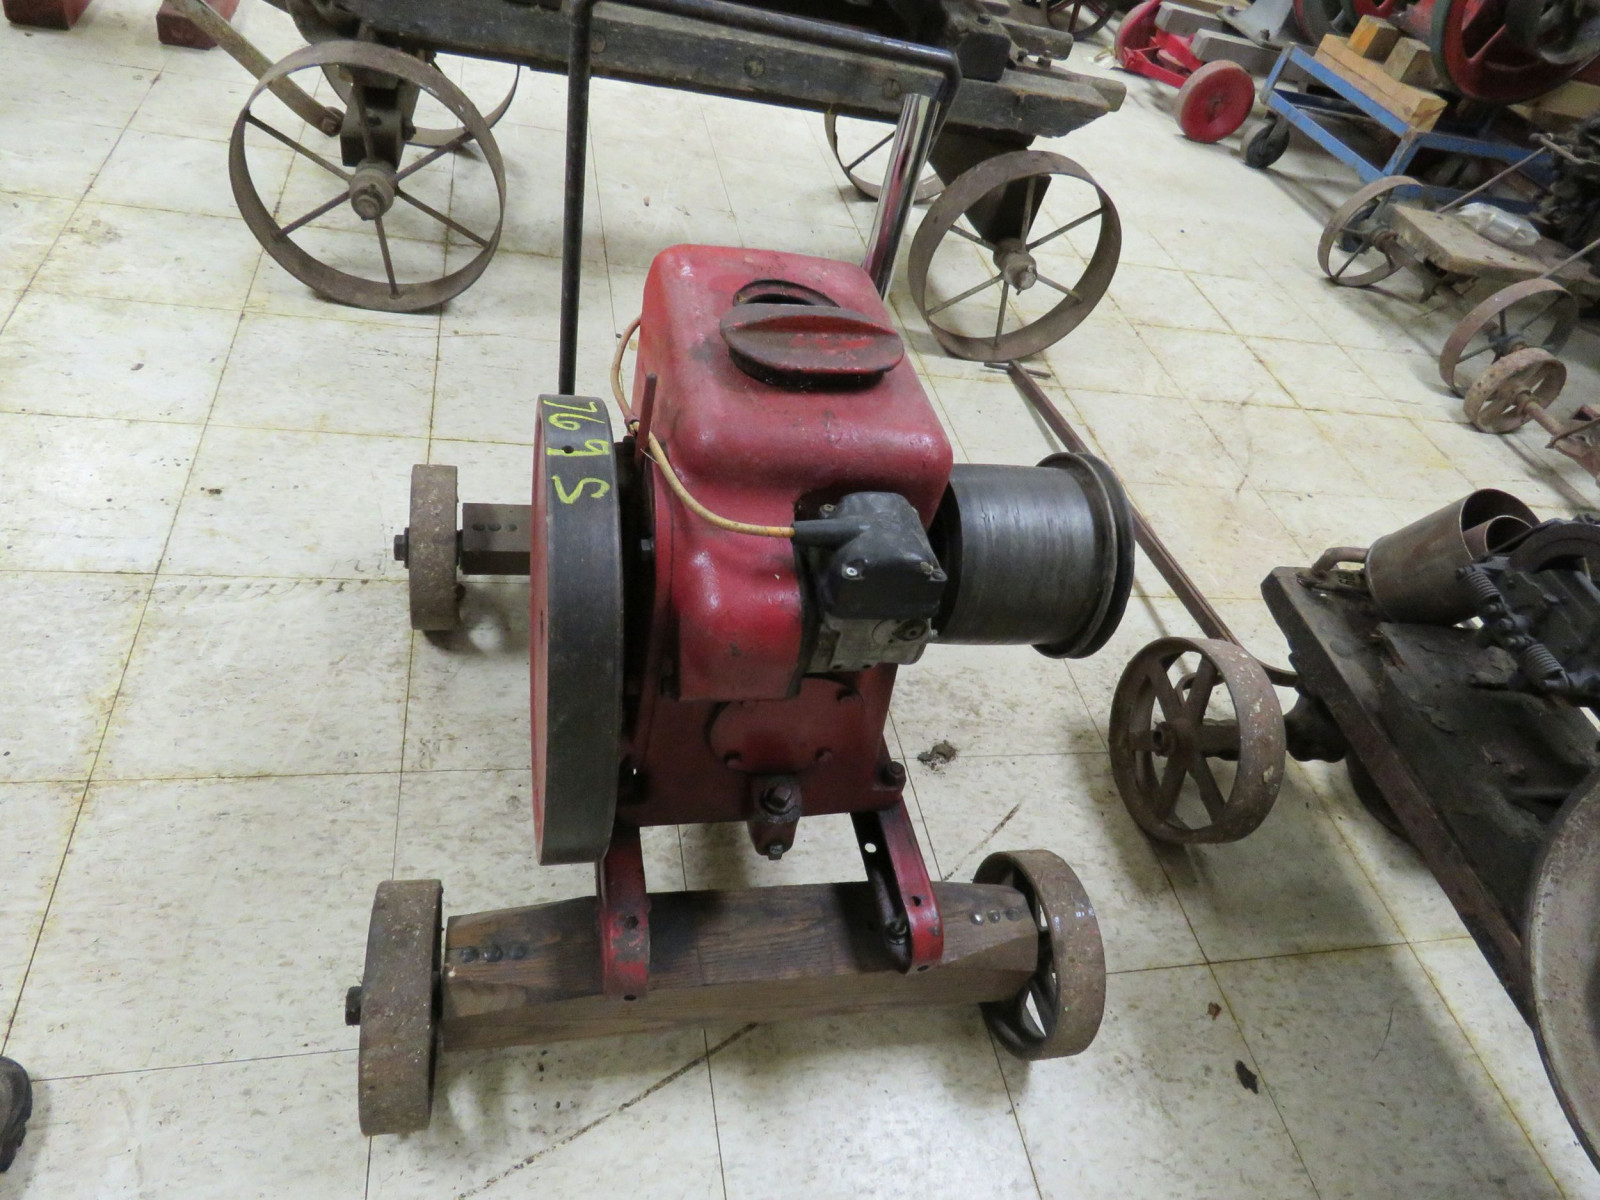 McCormick Deering LBA 1 1/2hp to 2 1/2hp Stationary Gas engine LBA 01003 - Image 2